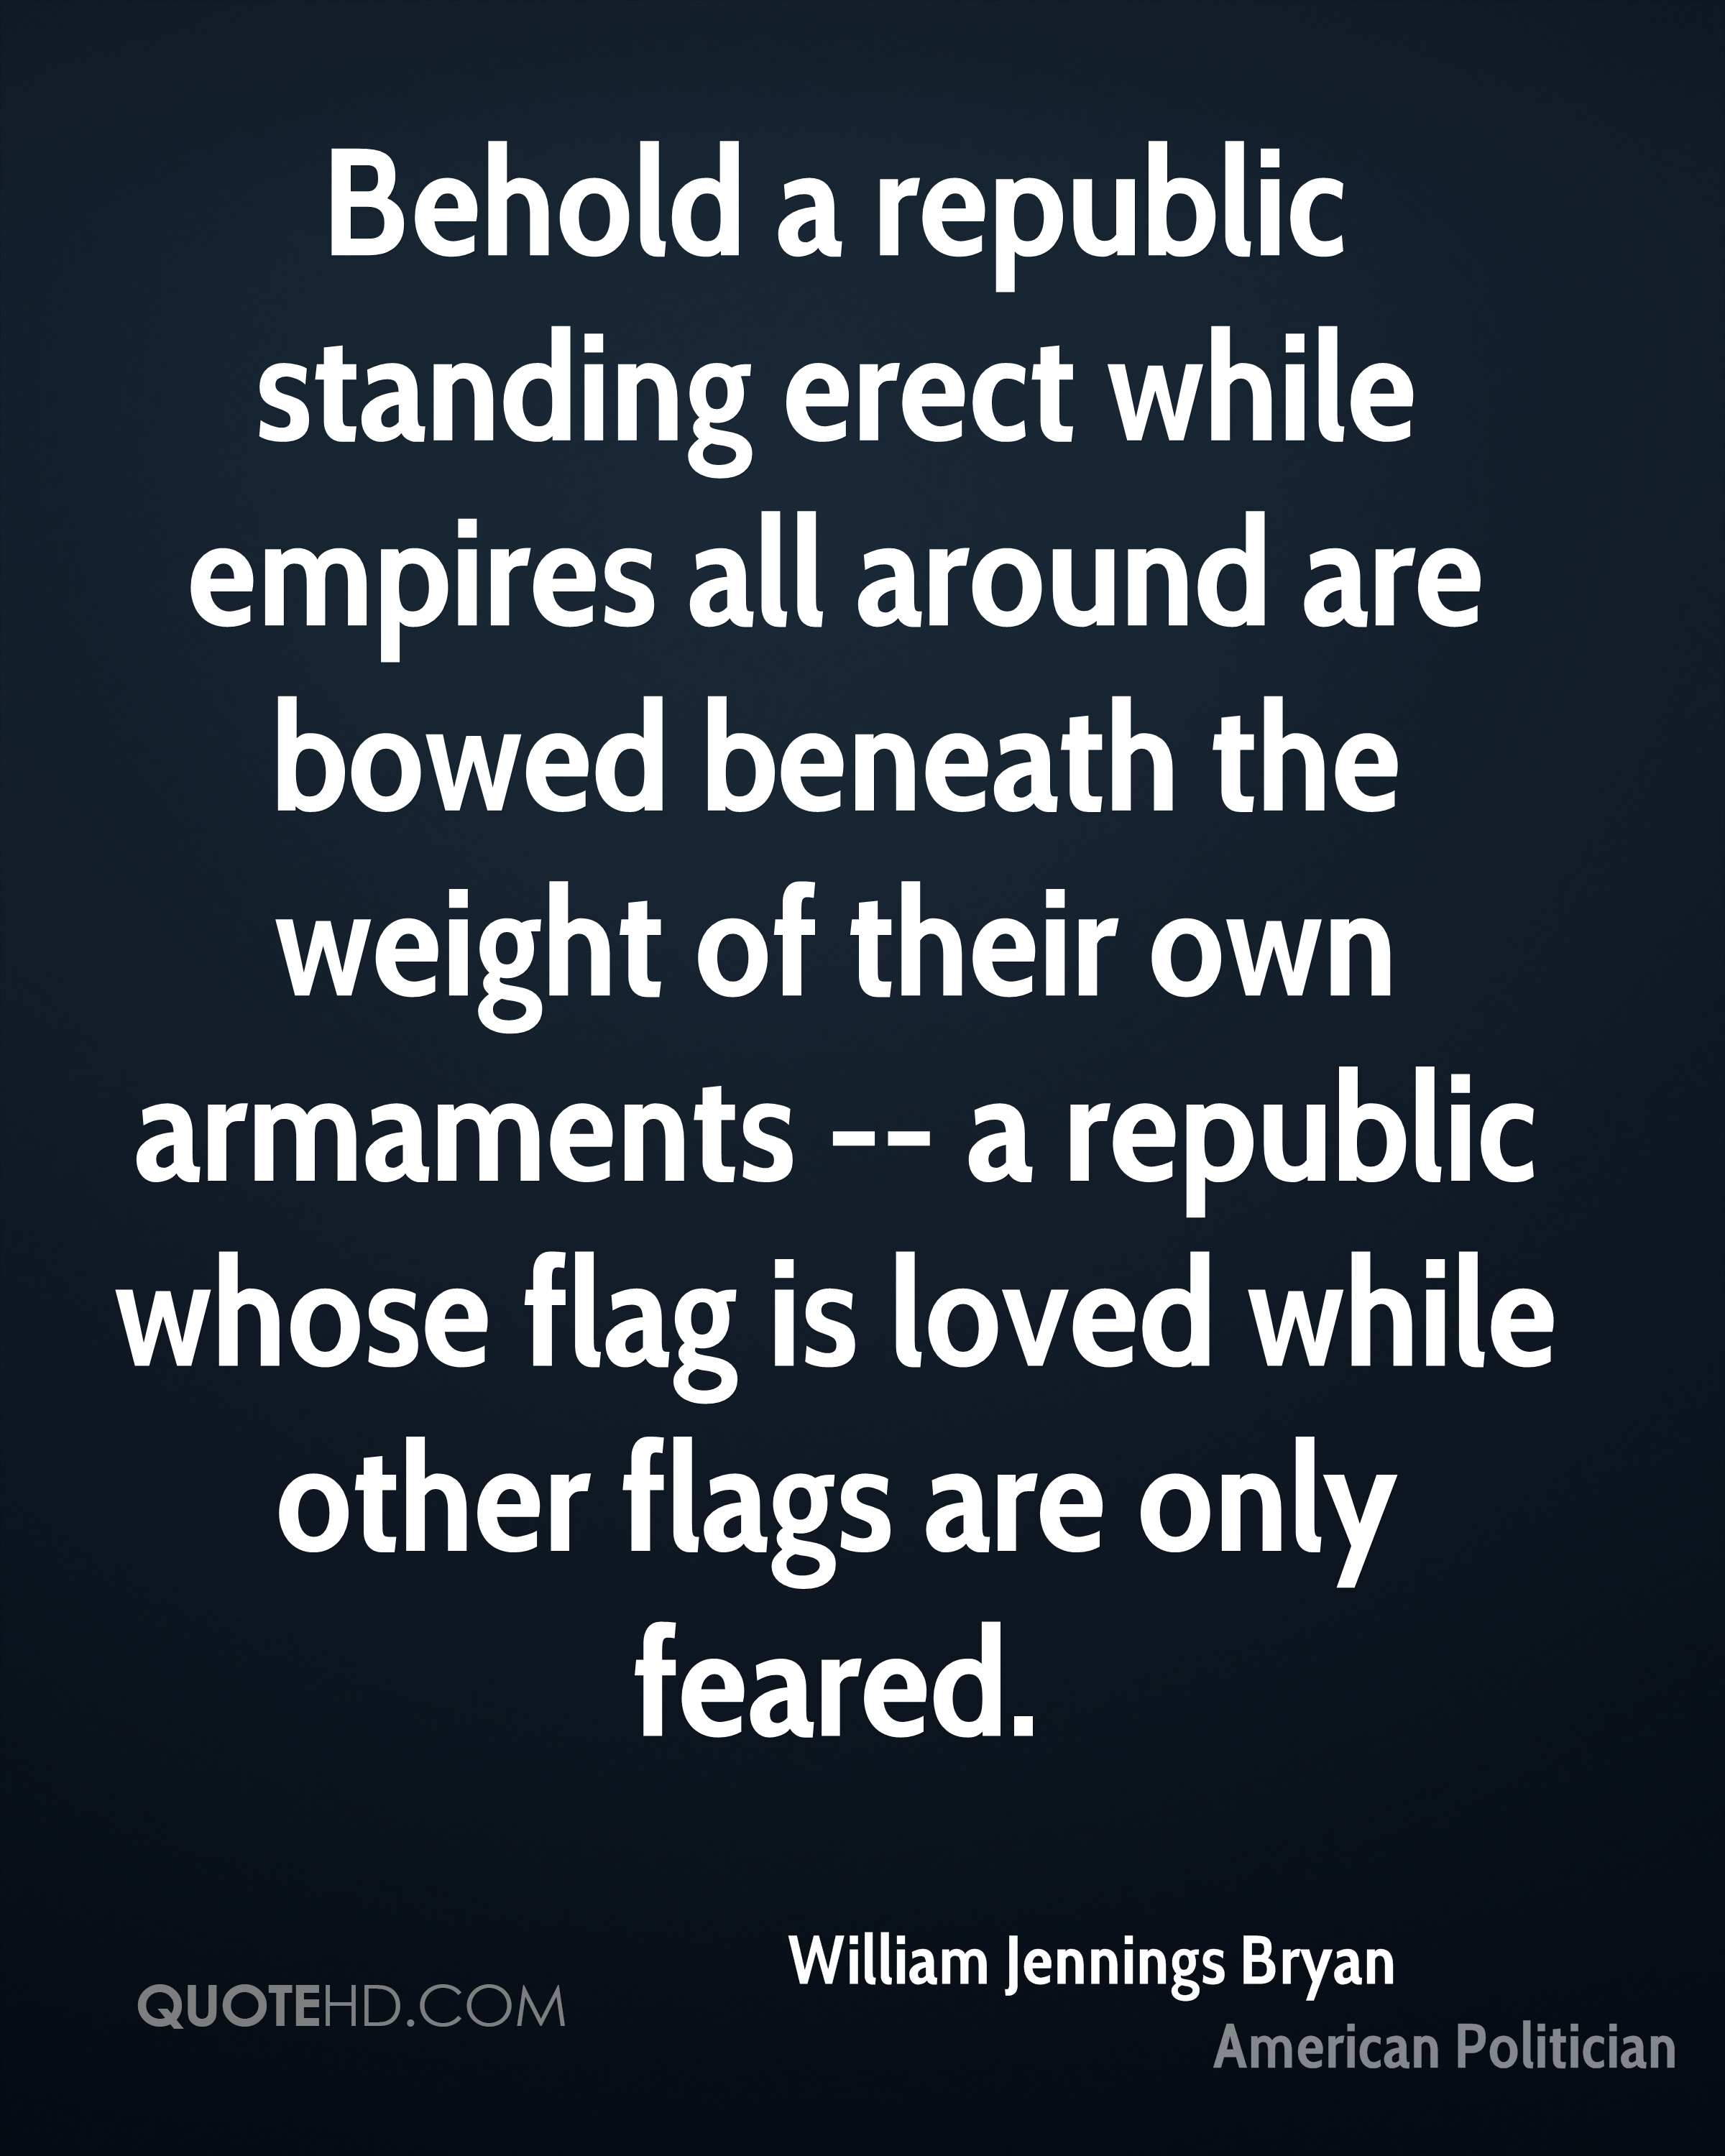 Behold a republic standing erect while empires all around are bowed beneath the weight of their own armaments -- a republic whose flag is loved while other flags are only feared.